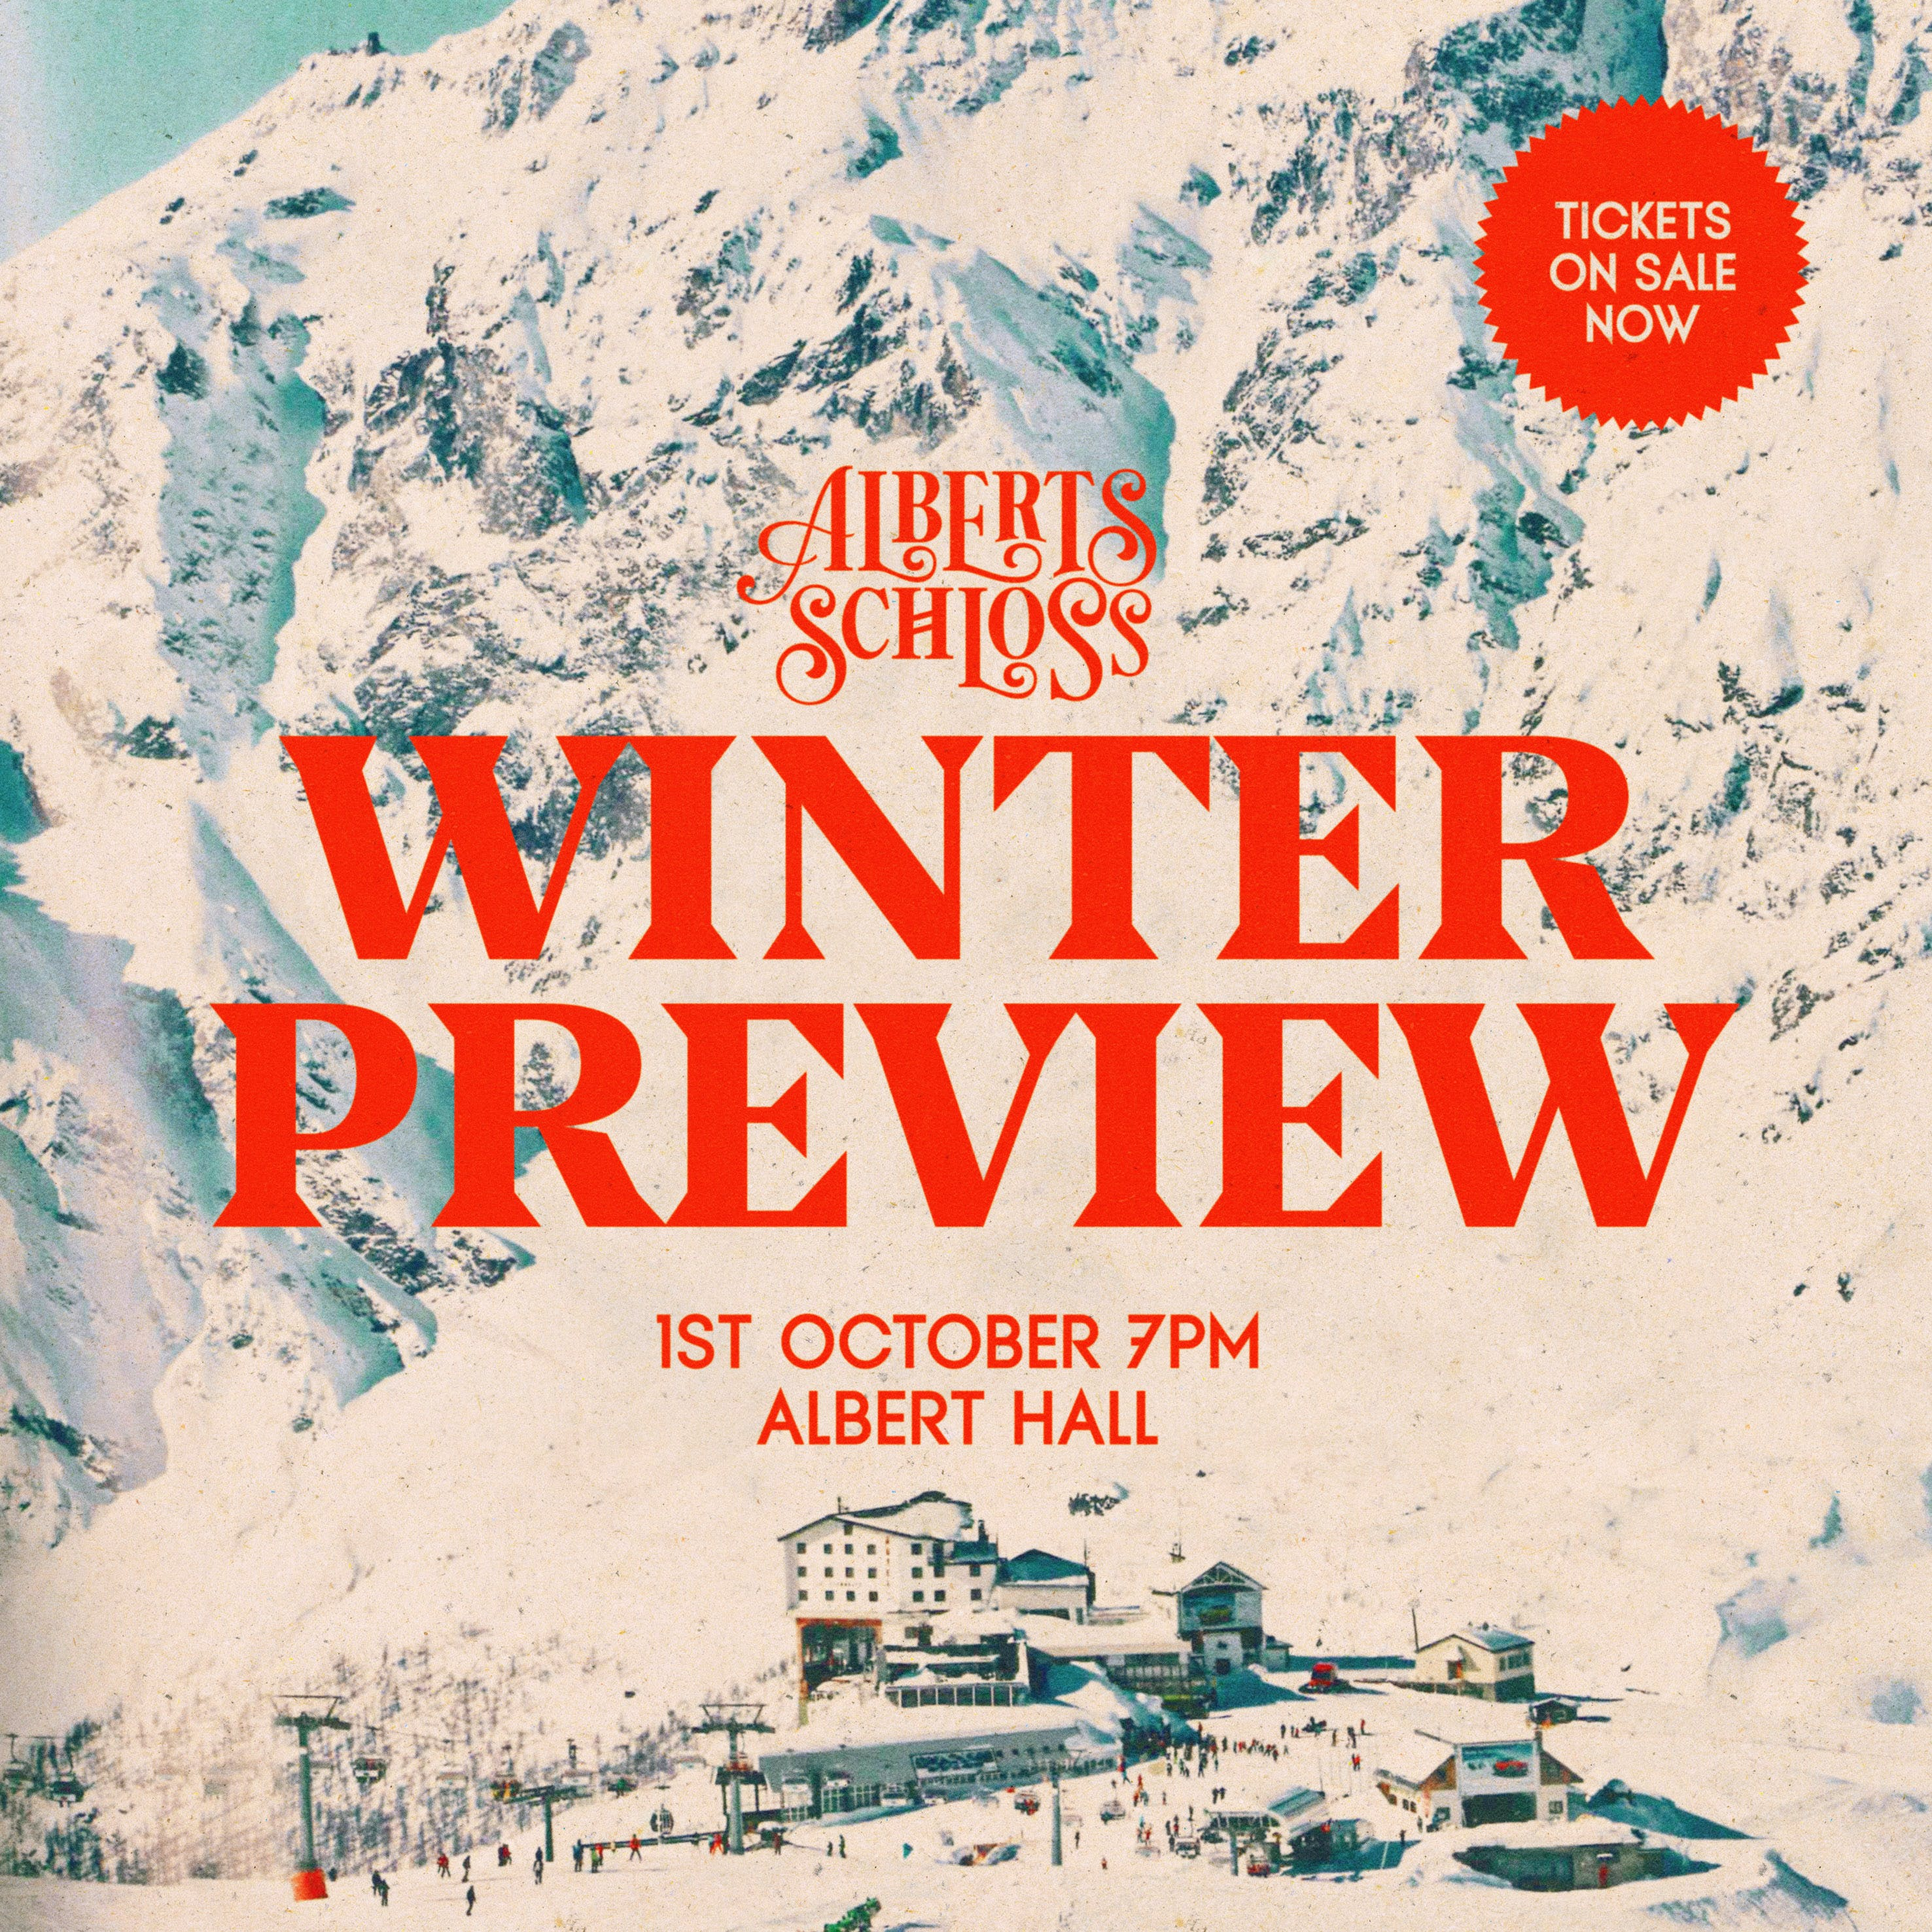 WINTER PREVIEW